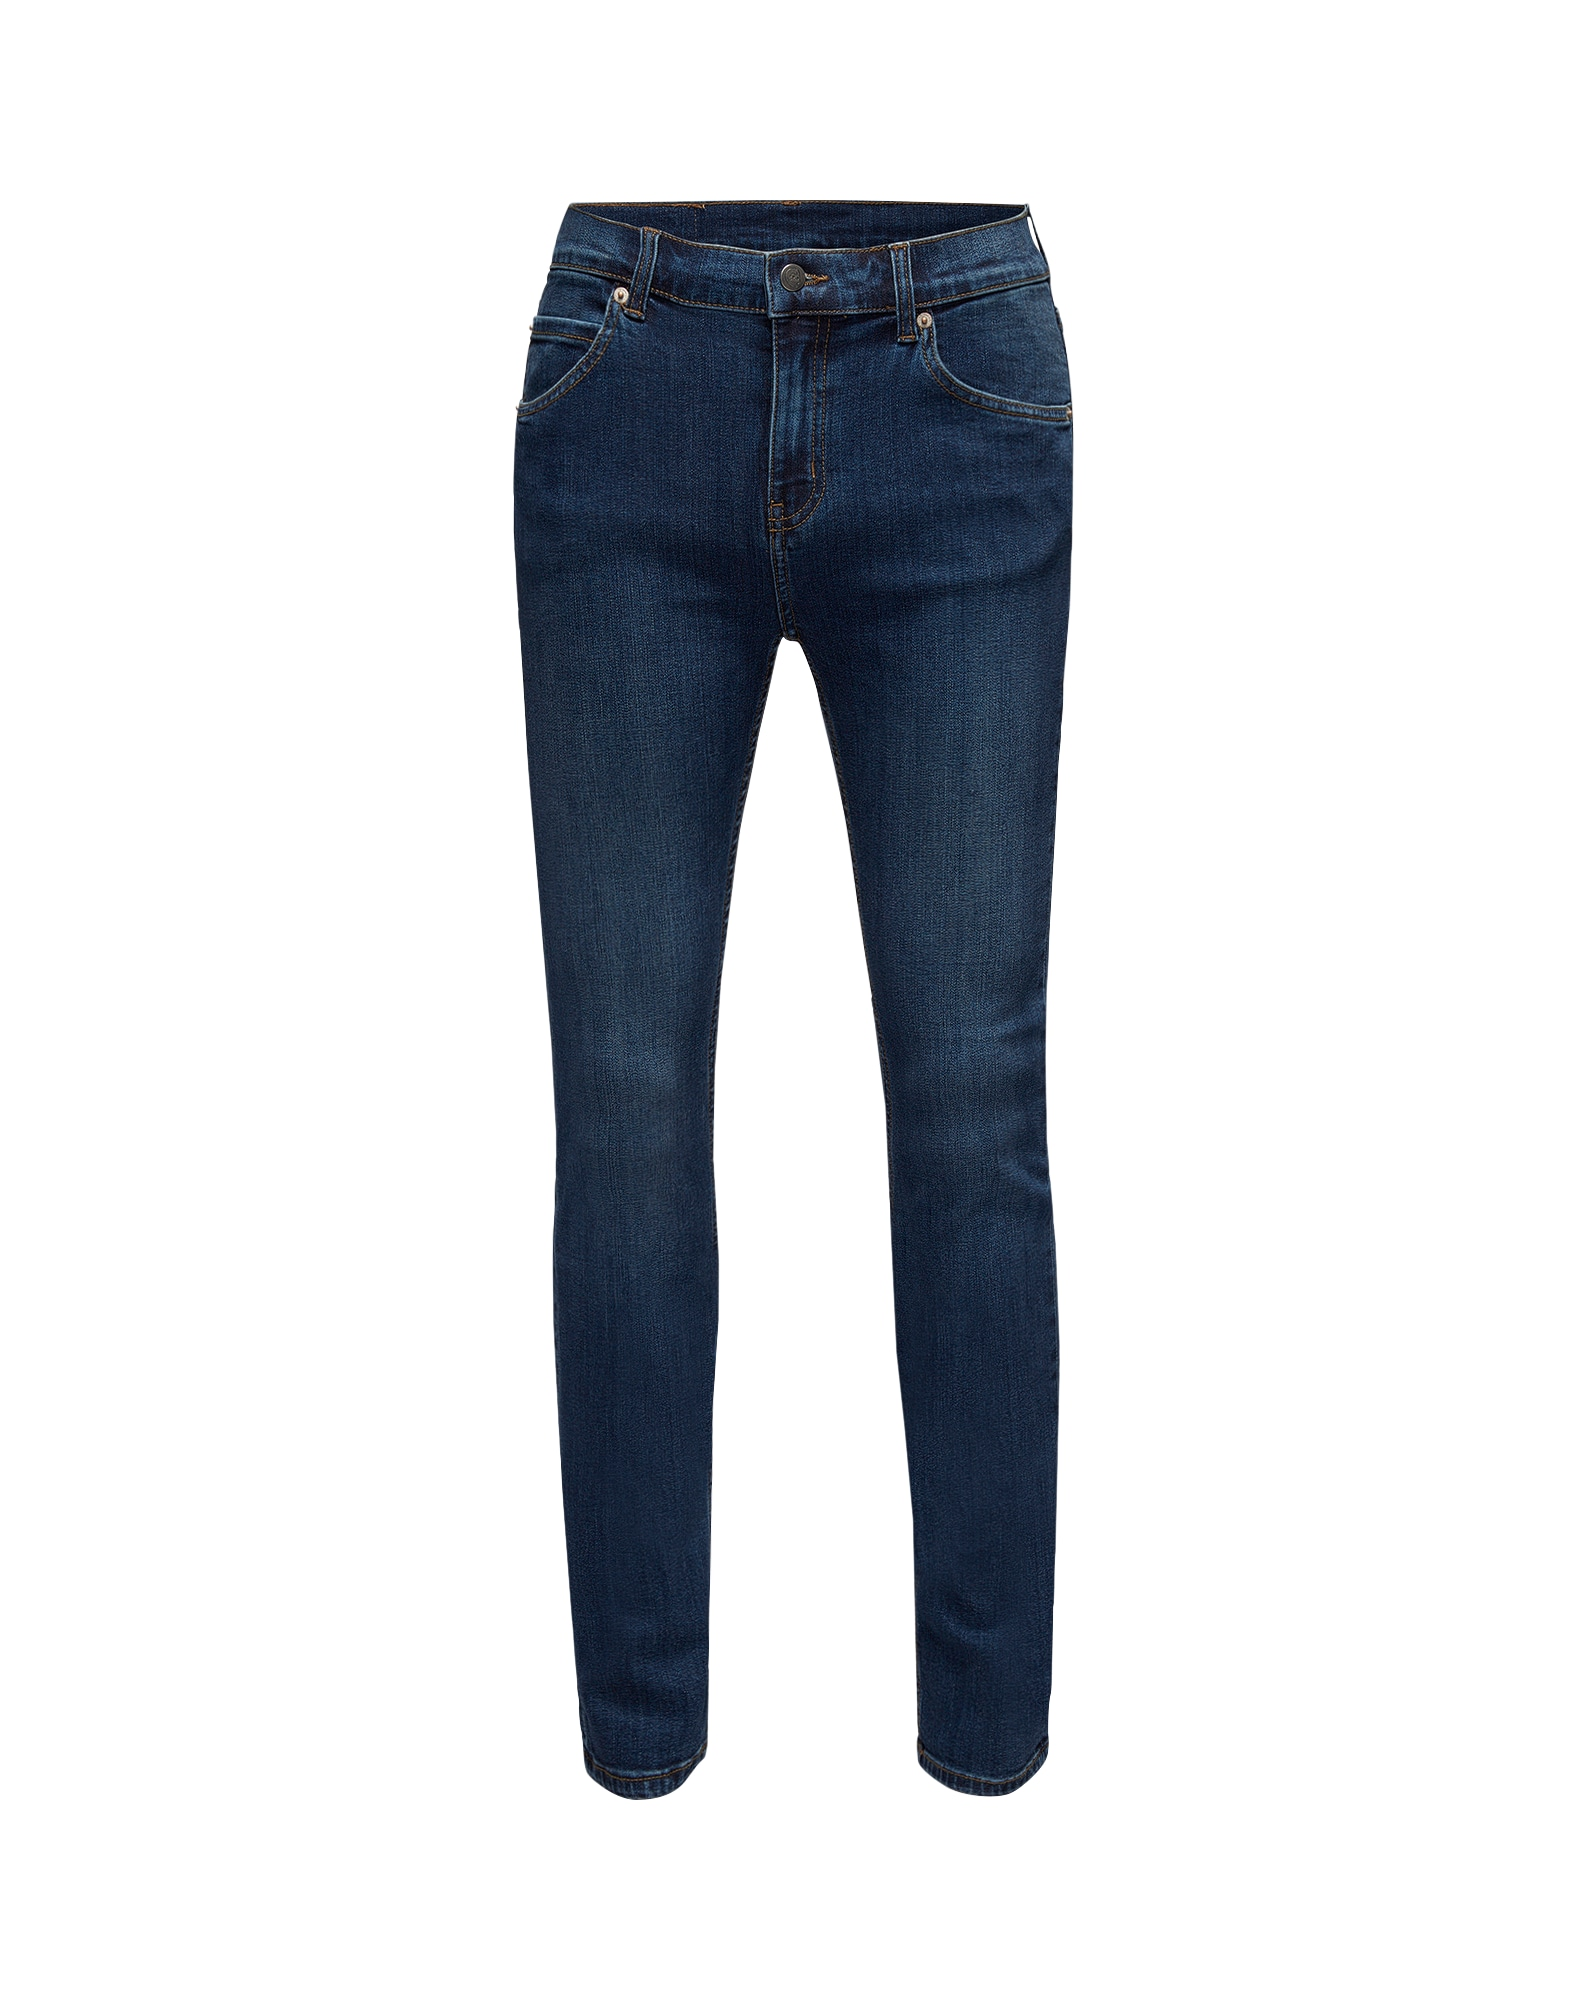 CHEAP MONDAY Heren Jeans blauw